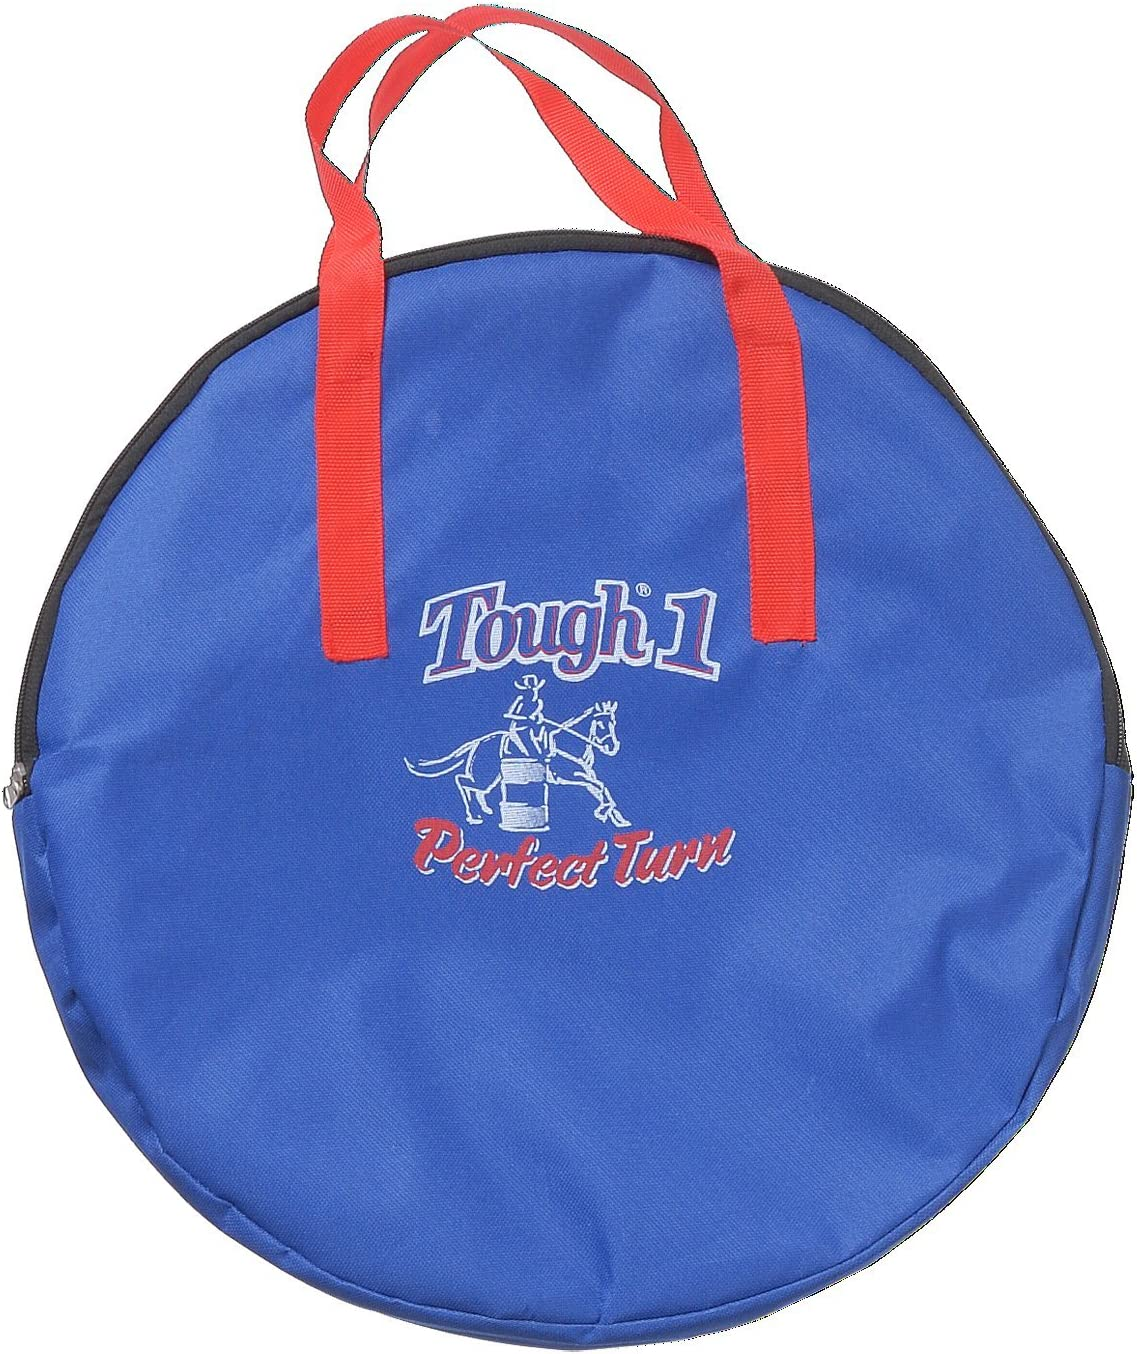 Tough 1 Kids Perfect Turn Collapsible Barrel Carry Case